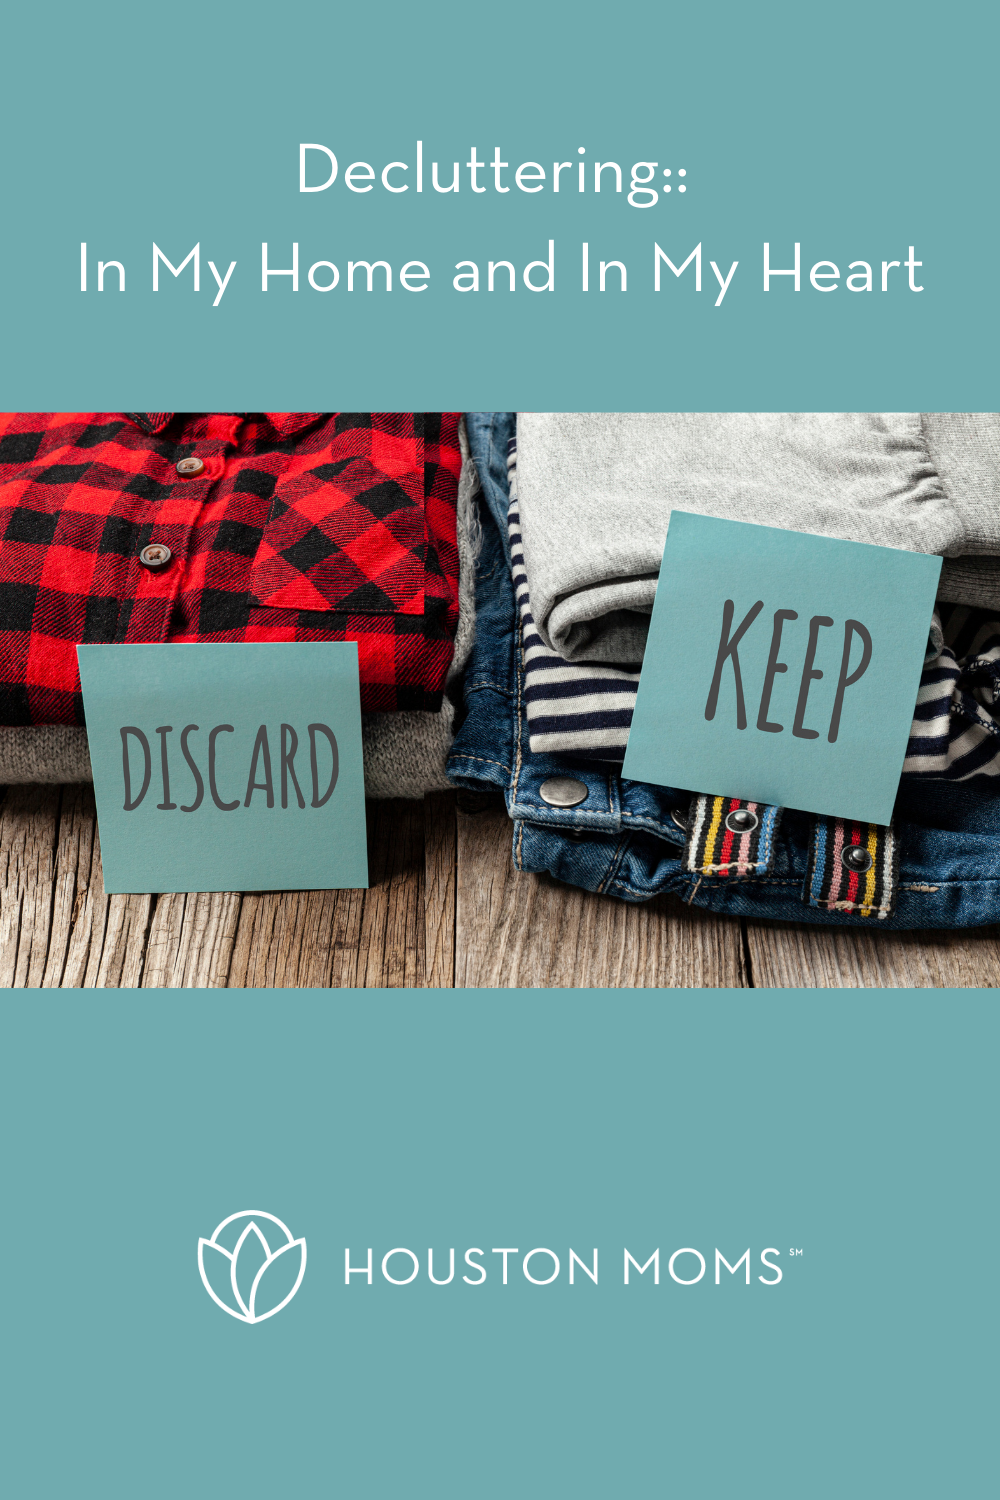 """Houston Moms """"Decluttering:: In My Home and In My Heart"""" #houstonmoms #houstonmomsblog #momsaroundhouston"""